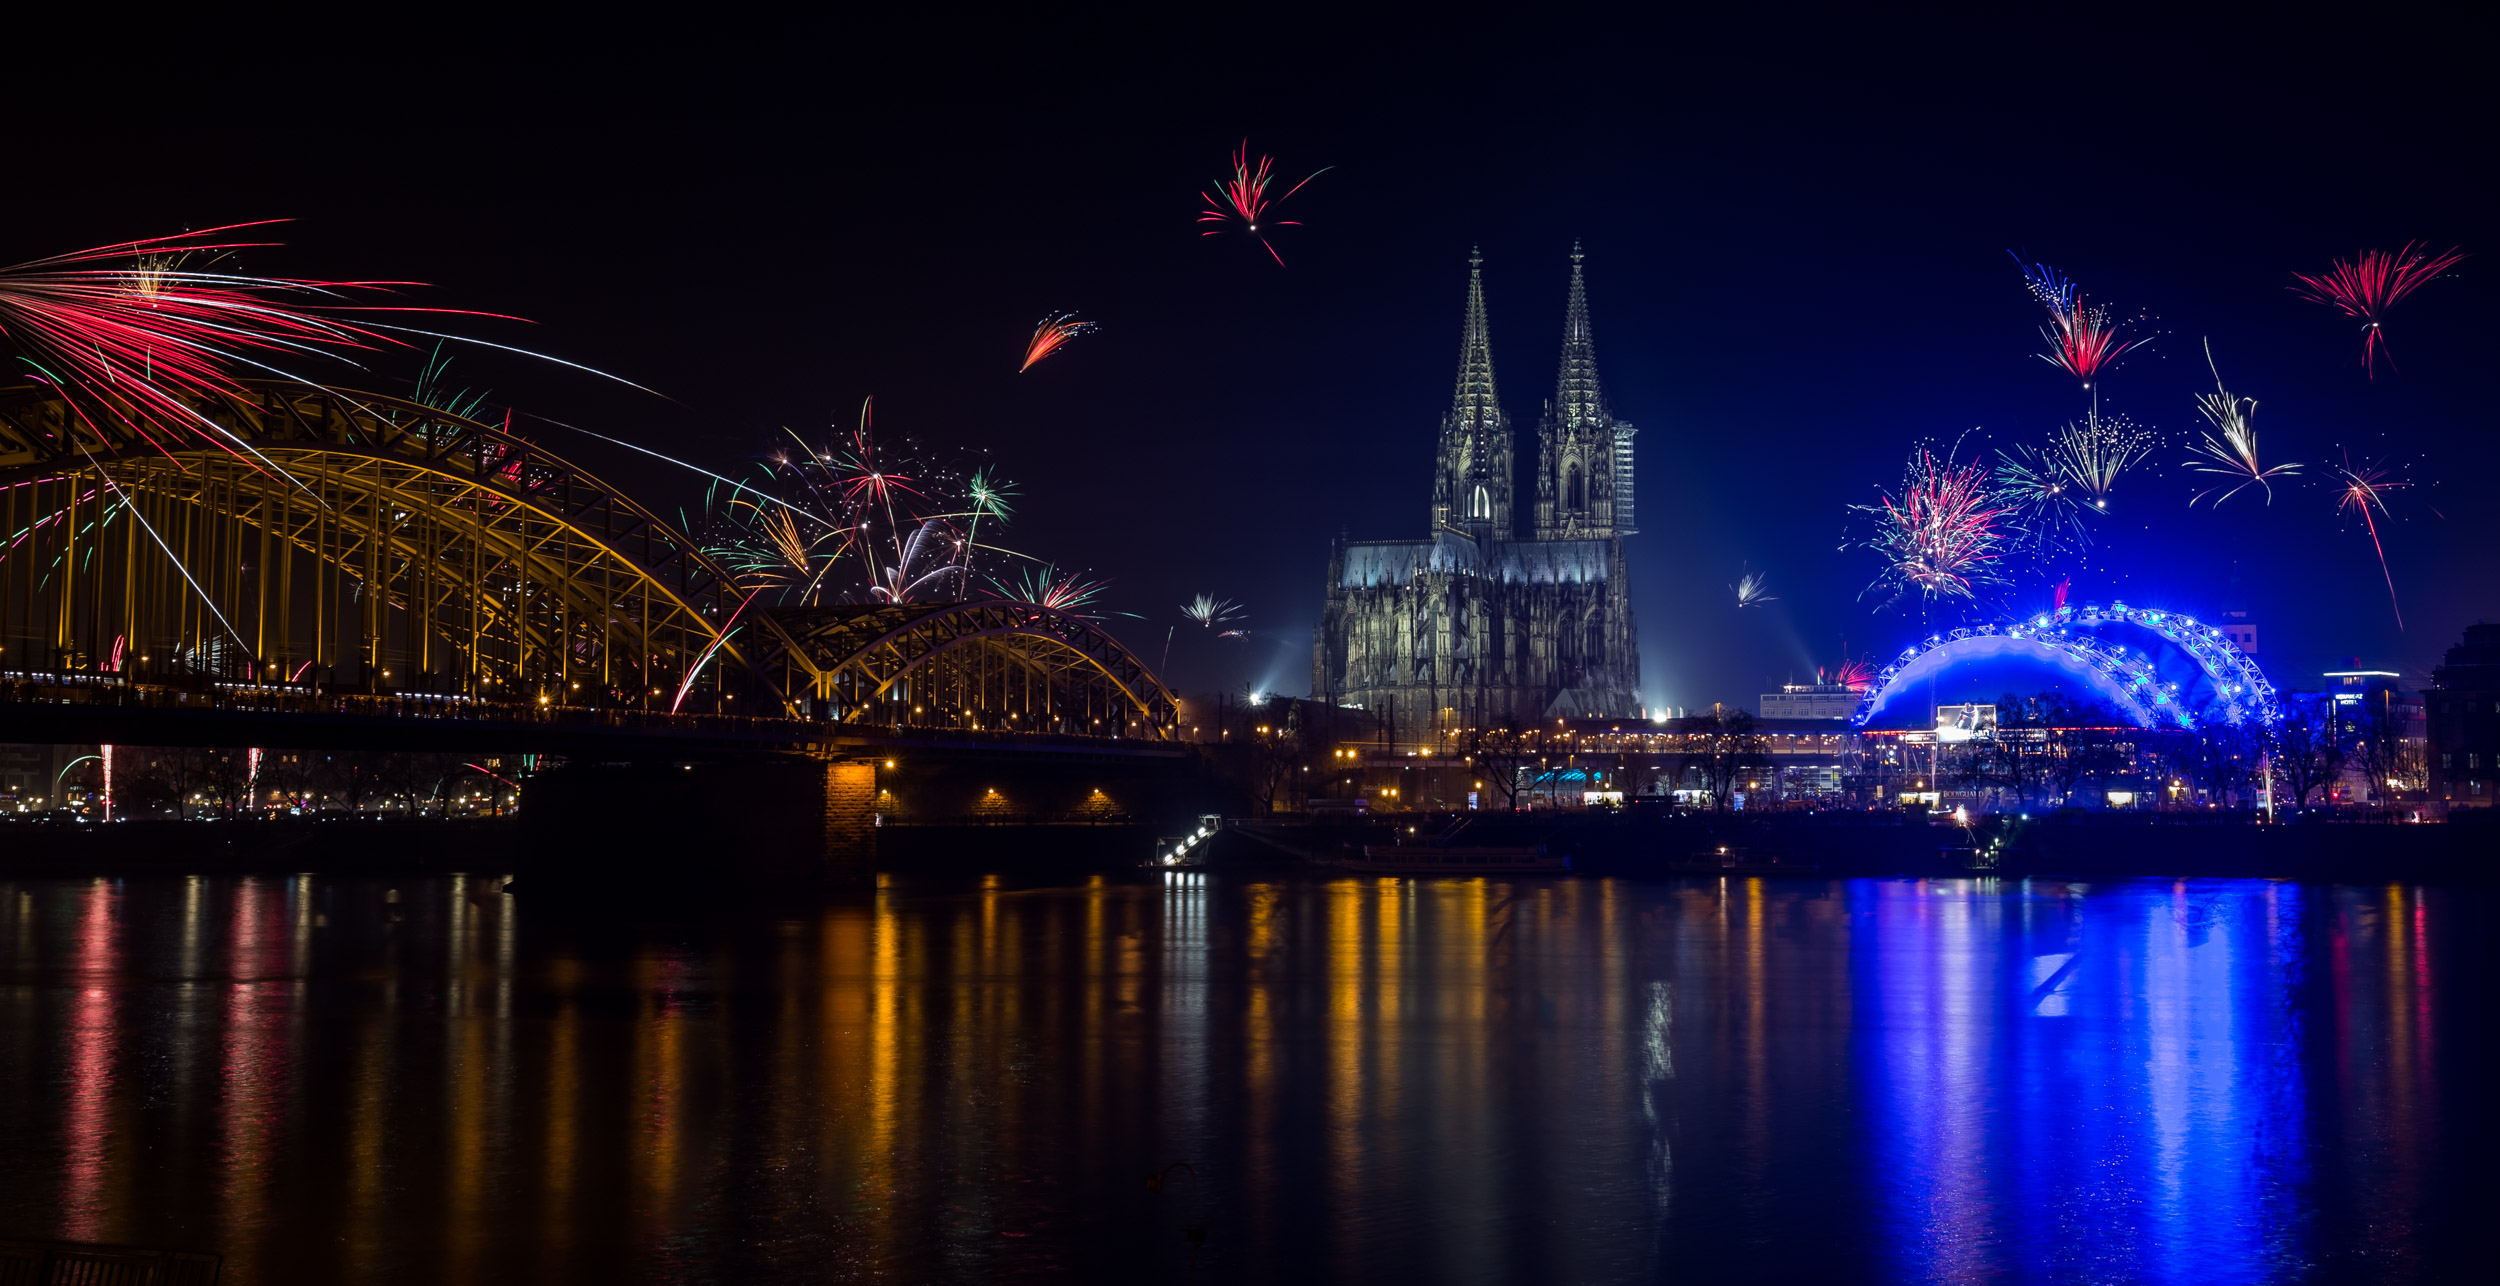 Fireworks at Cologne, Germany.